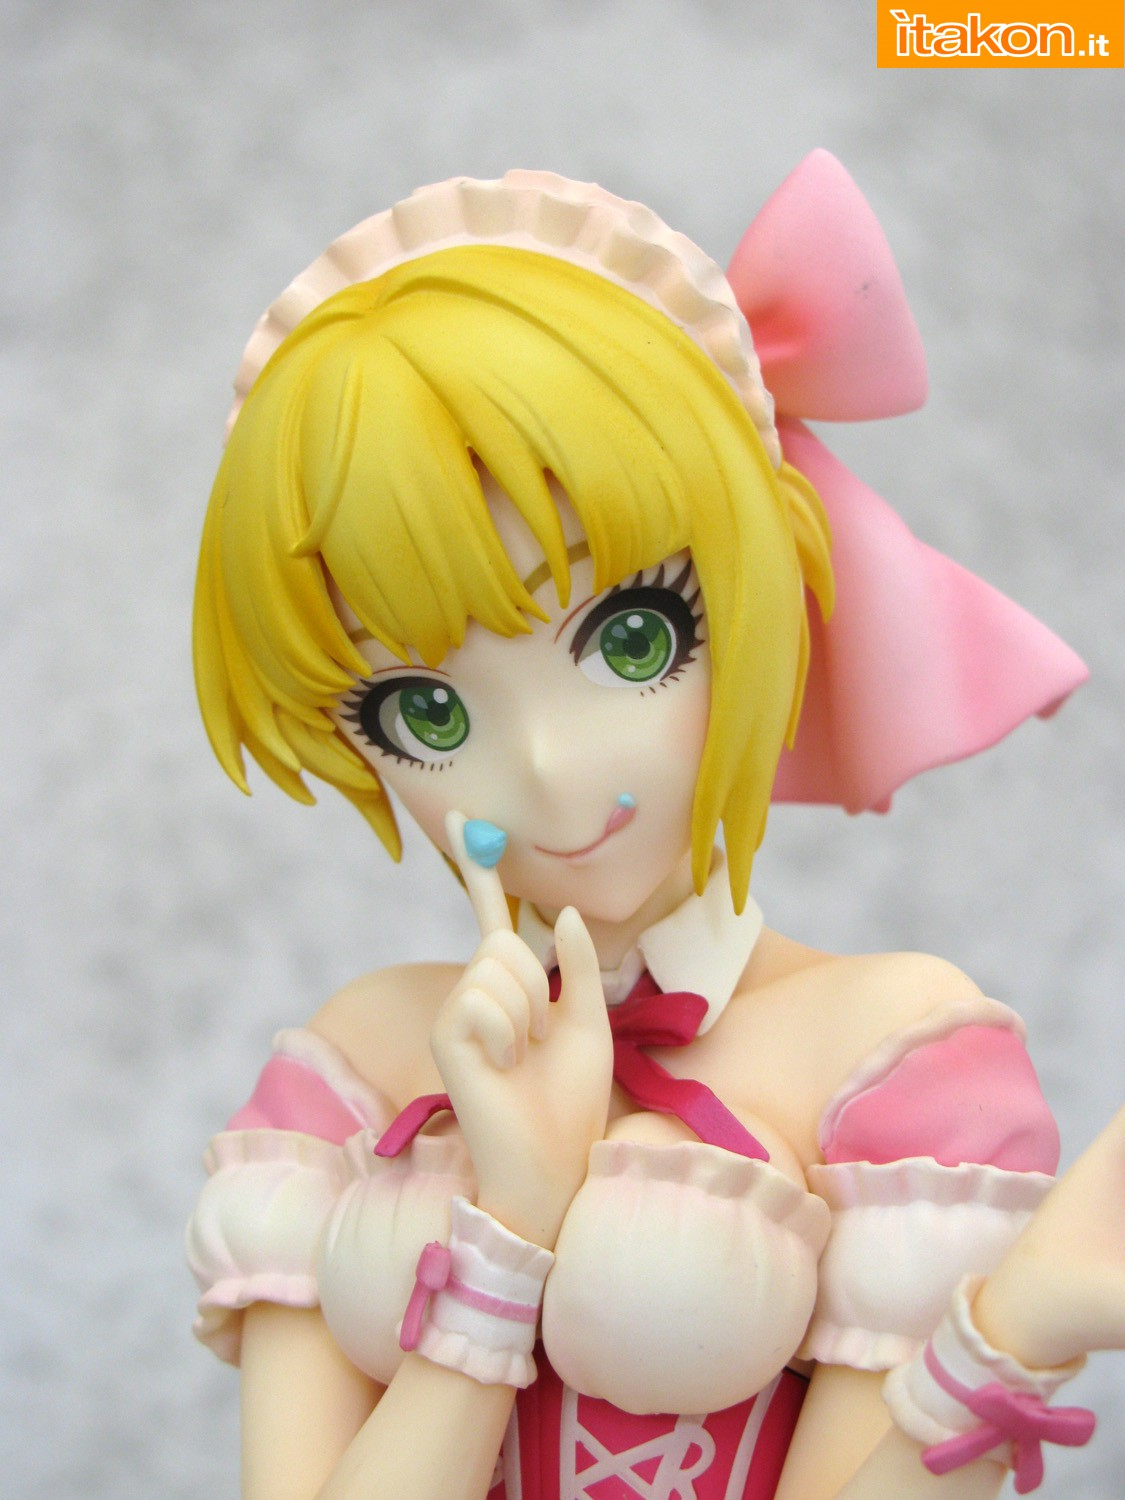 Link a 031 Frederica Miyamoto Little Devil Maid Phat recensione